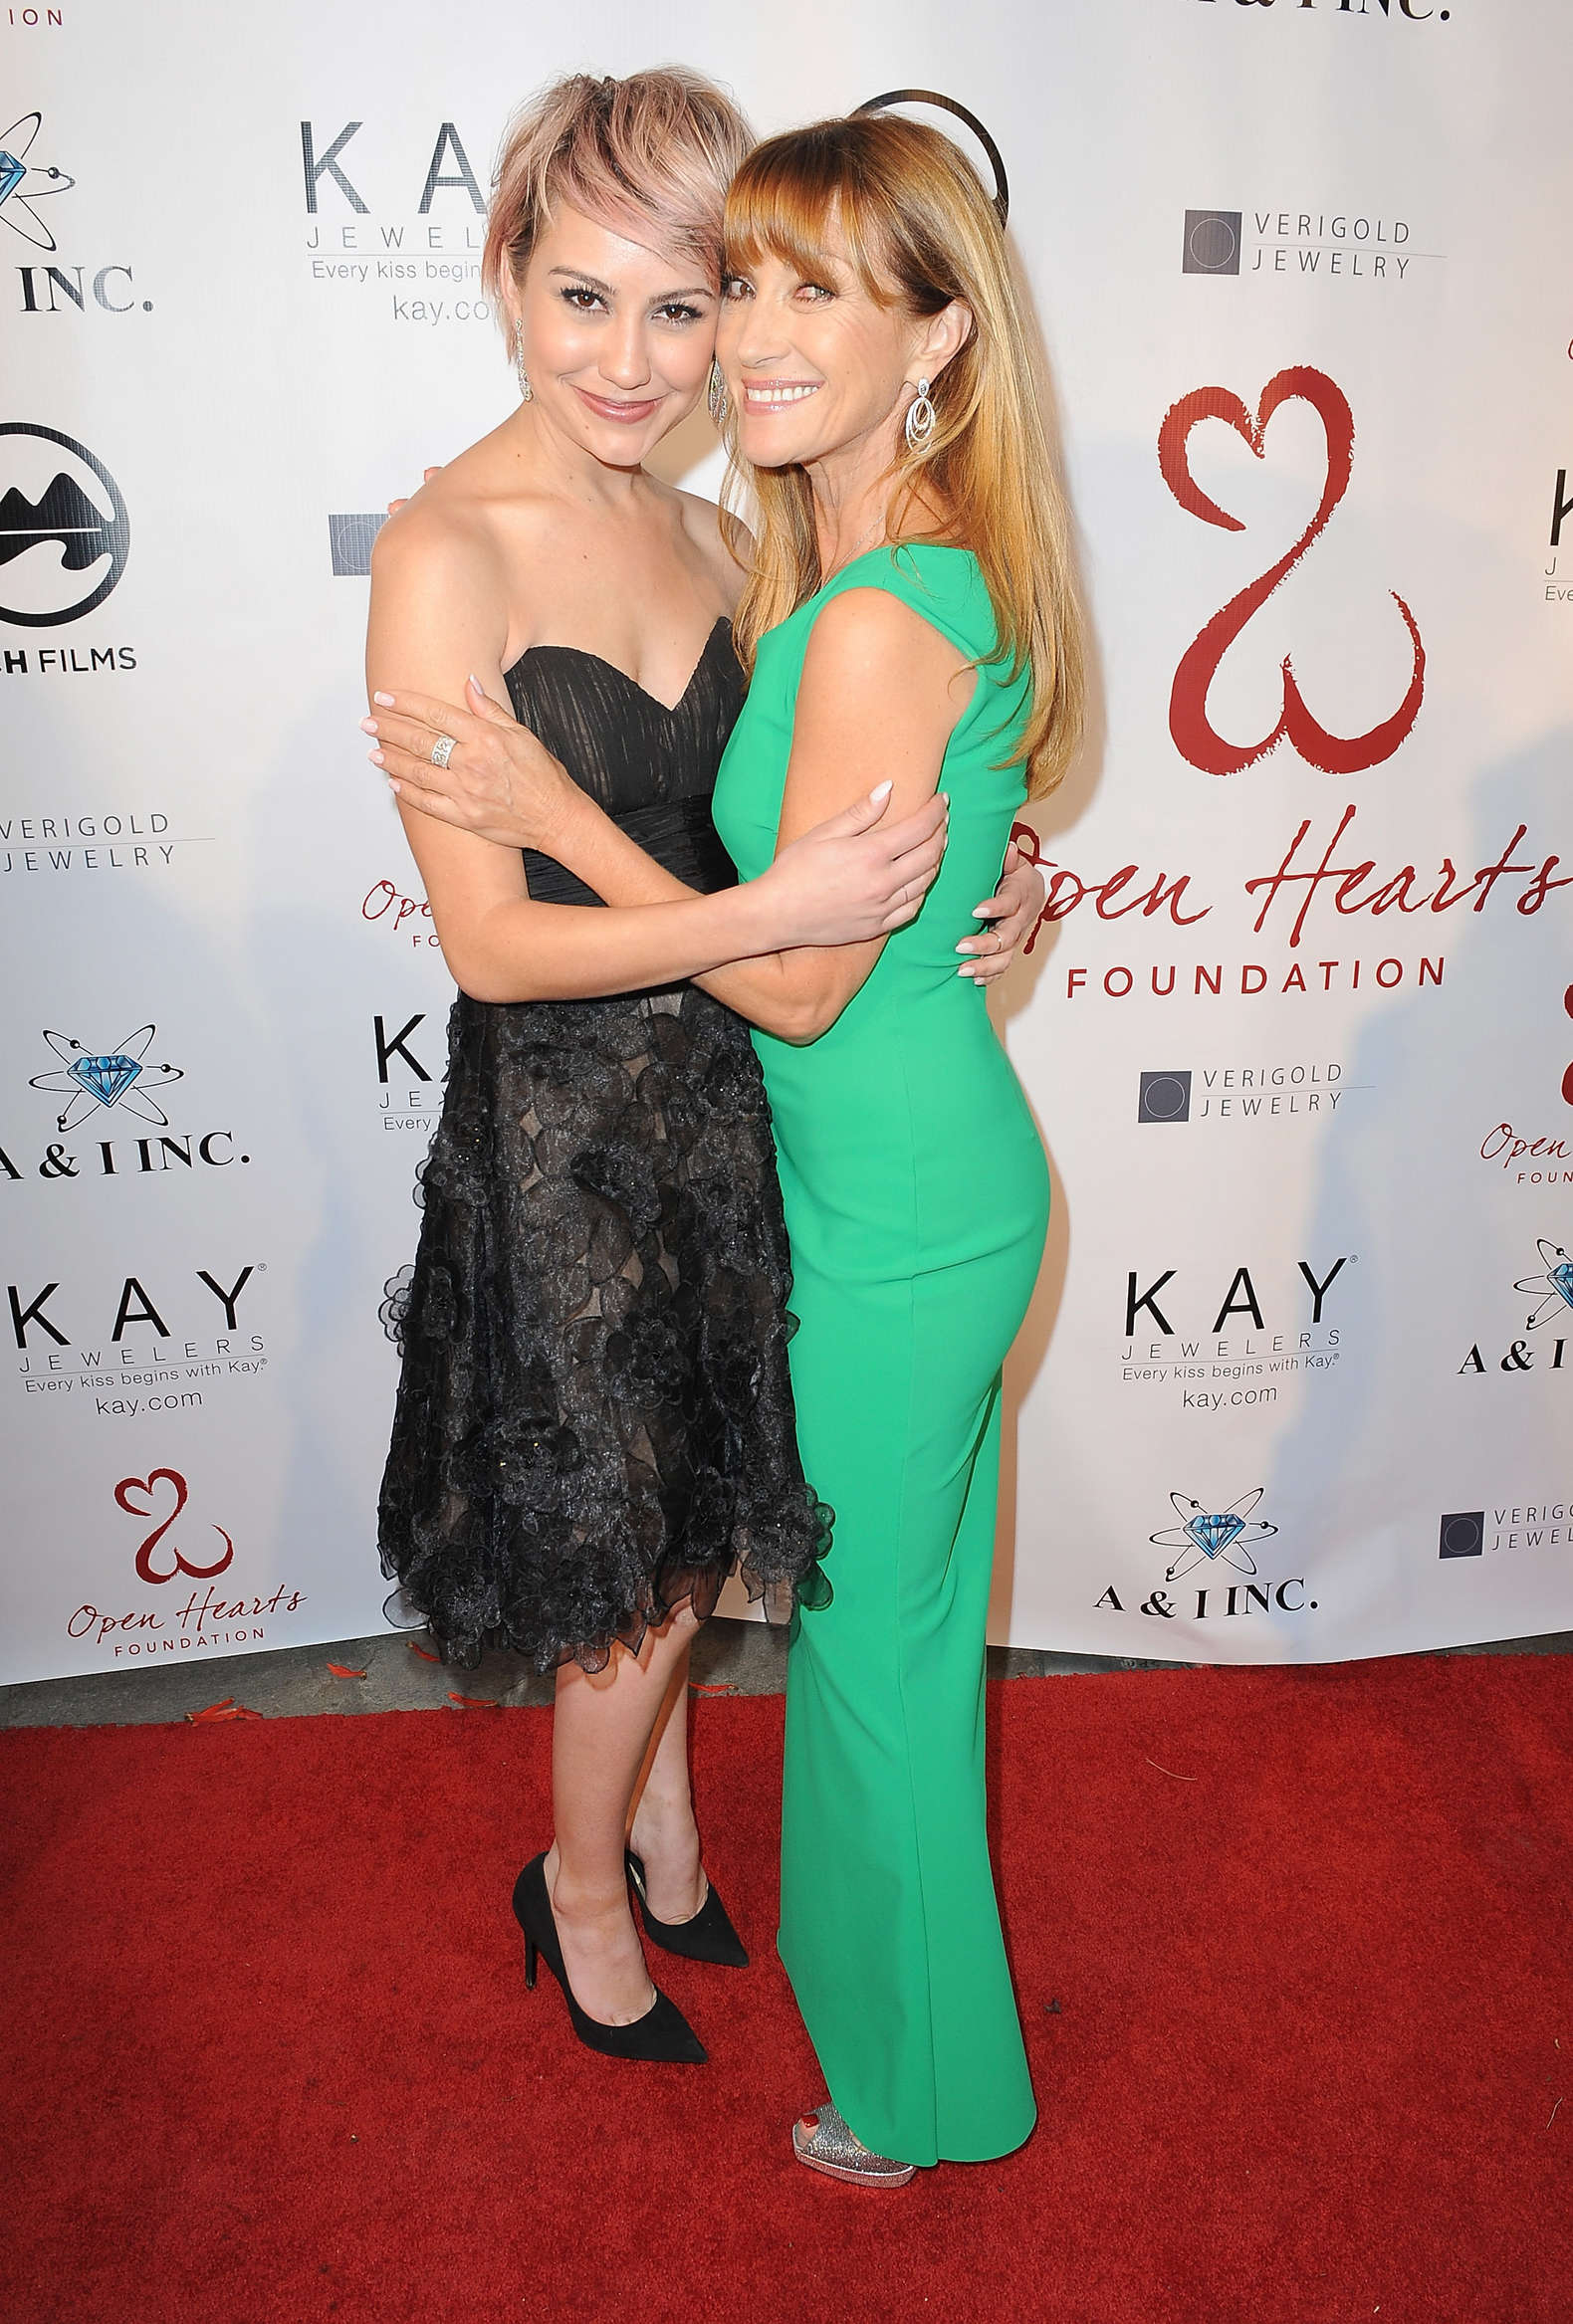 Chelsea Kane Open Hearts Foundation Annual Gala in Malibu